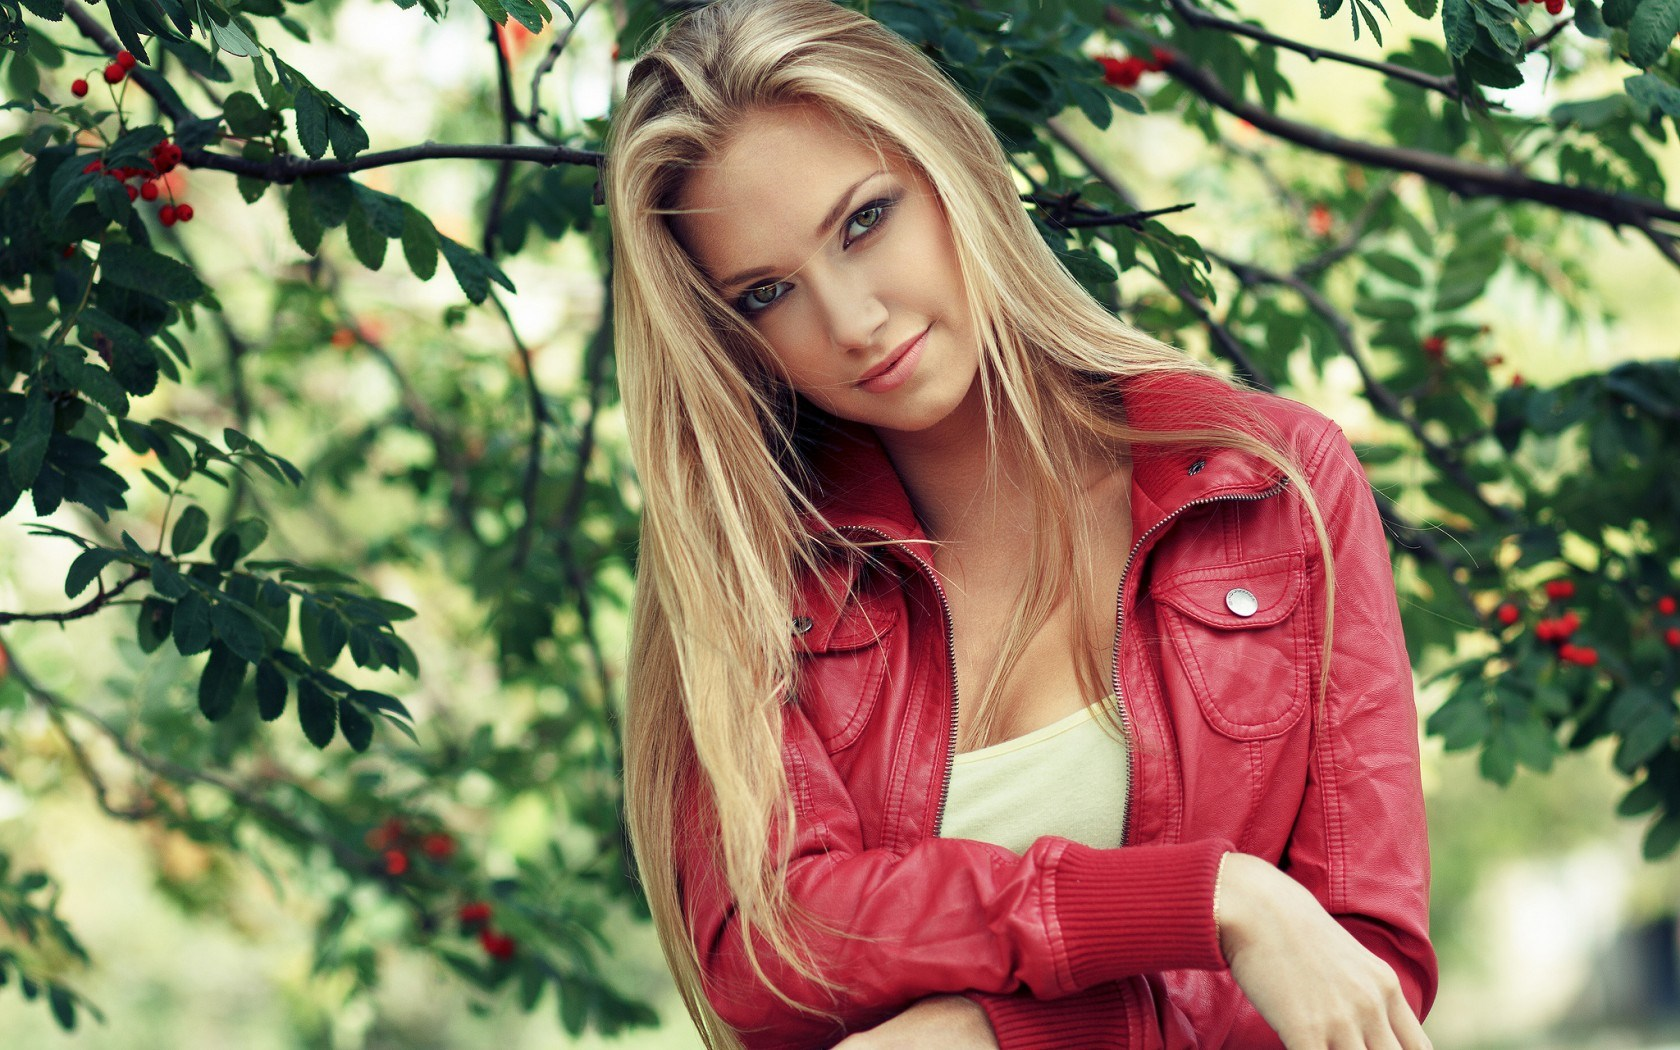 Ru Girl Garden Wallpaper Blonde Girl With Red Jacket Photography Wallpapers On